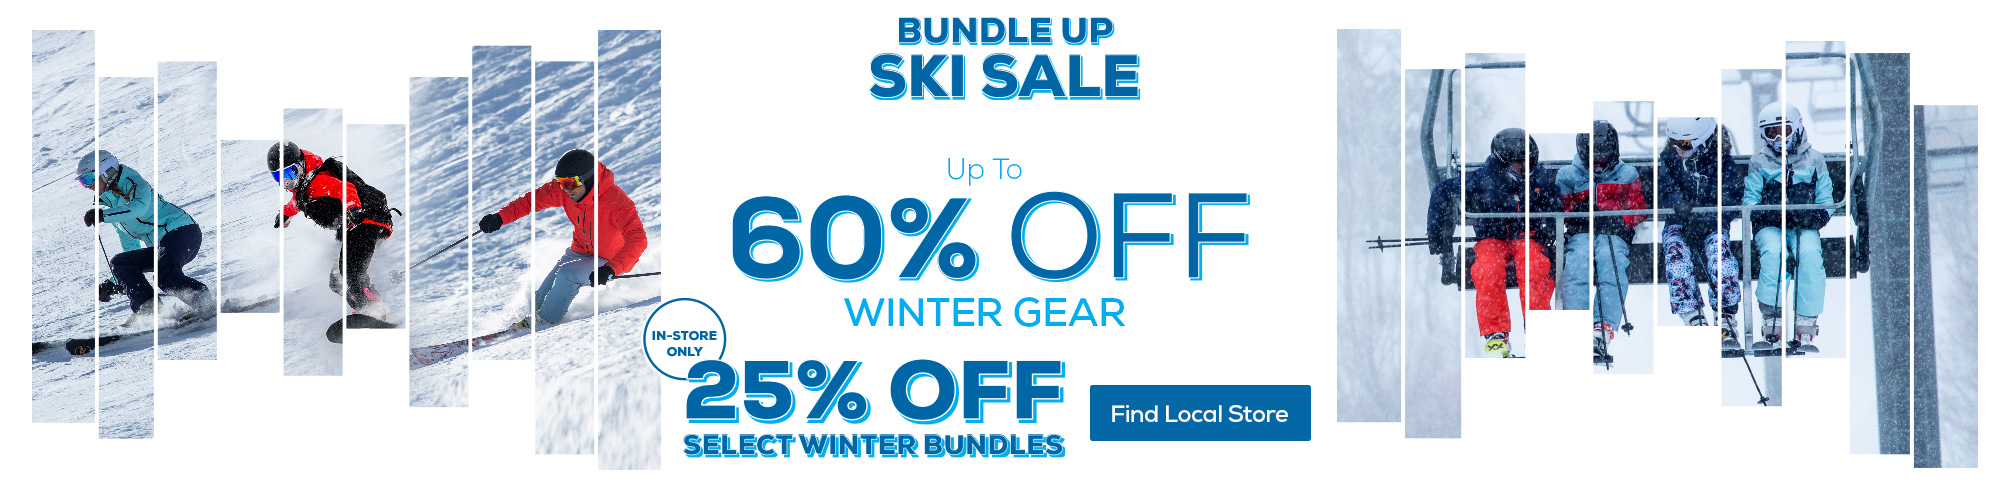 Bundle Up Ski Sale. Up to 505 off winter apparel plus 25% off select winter bundles in store. Find a local store.